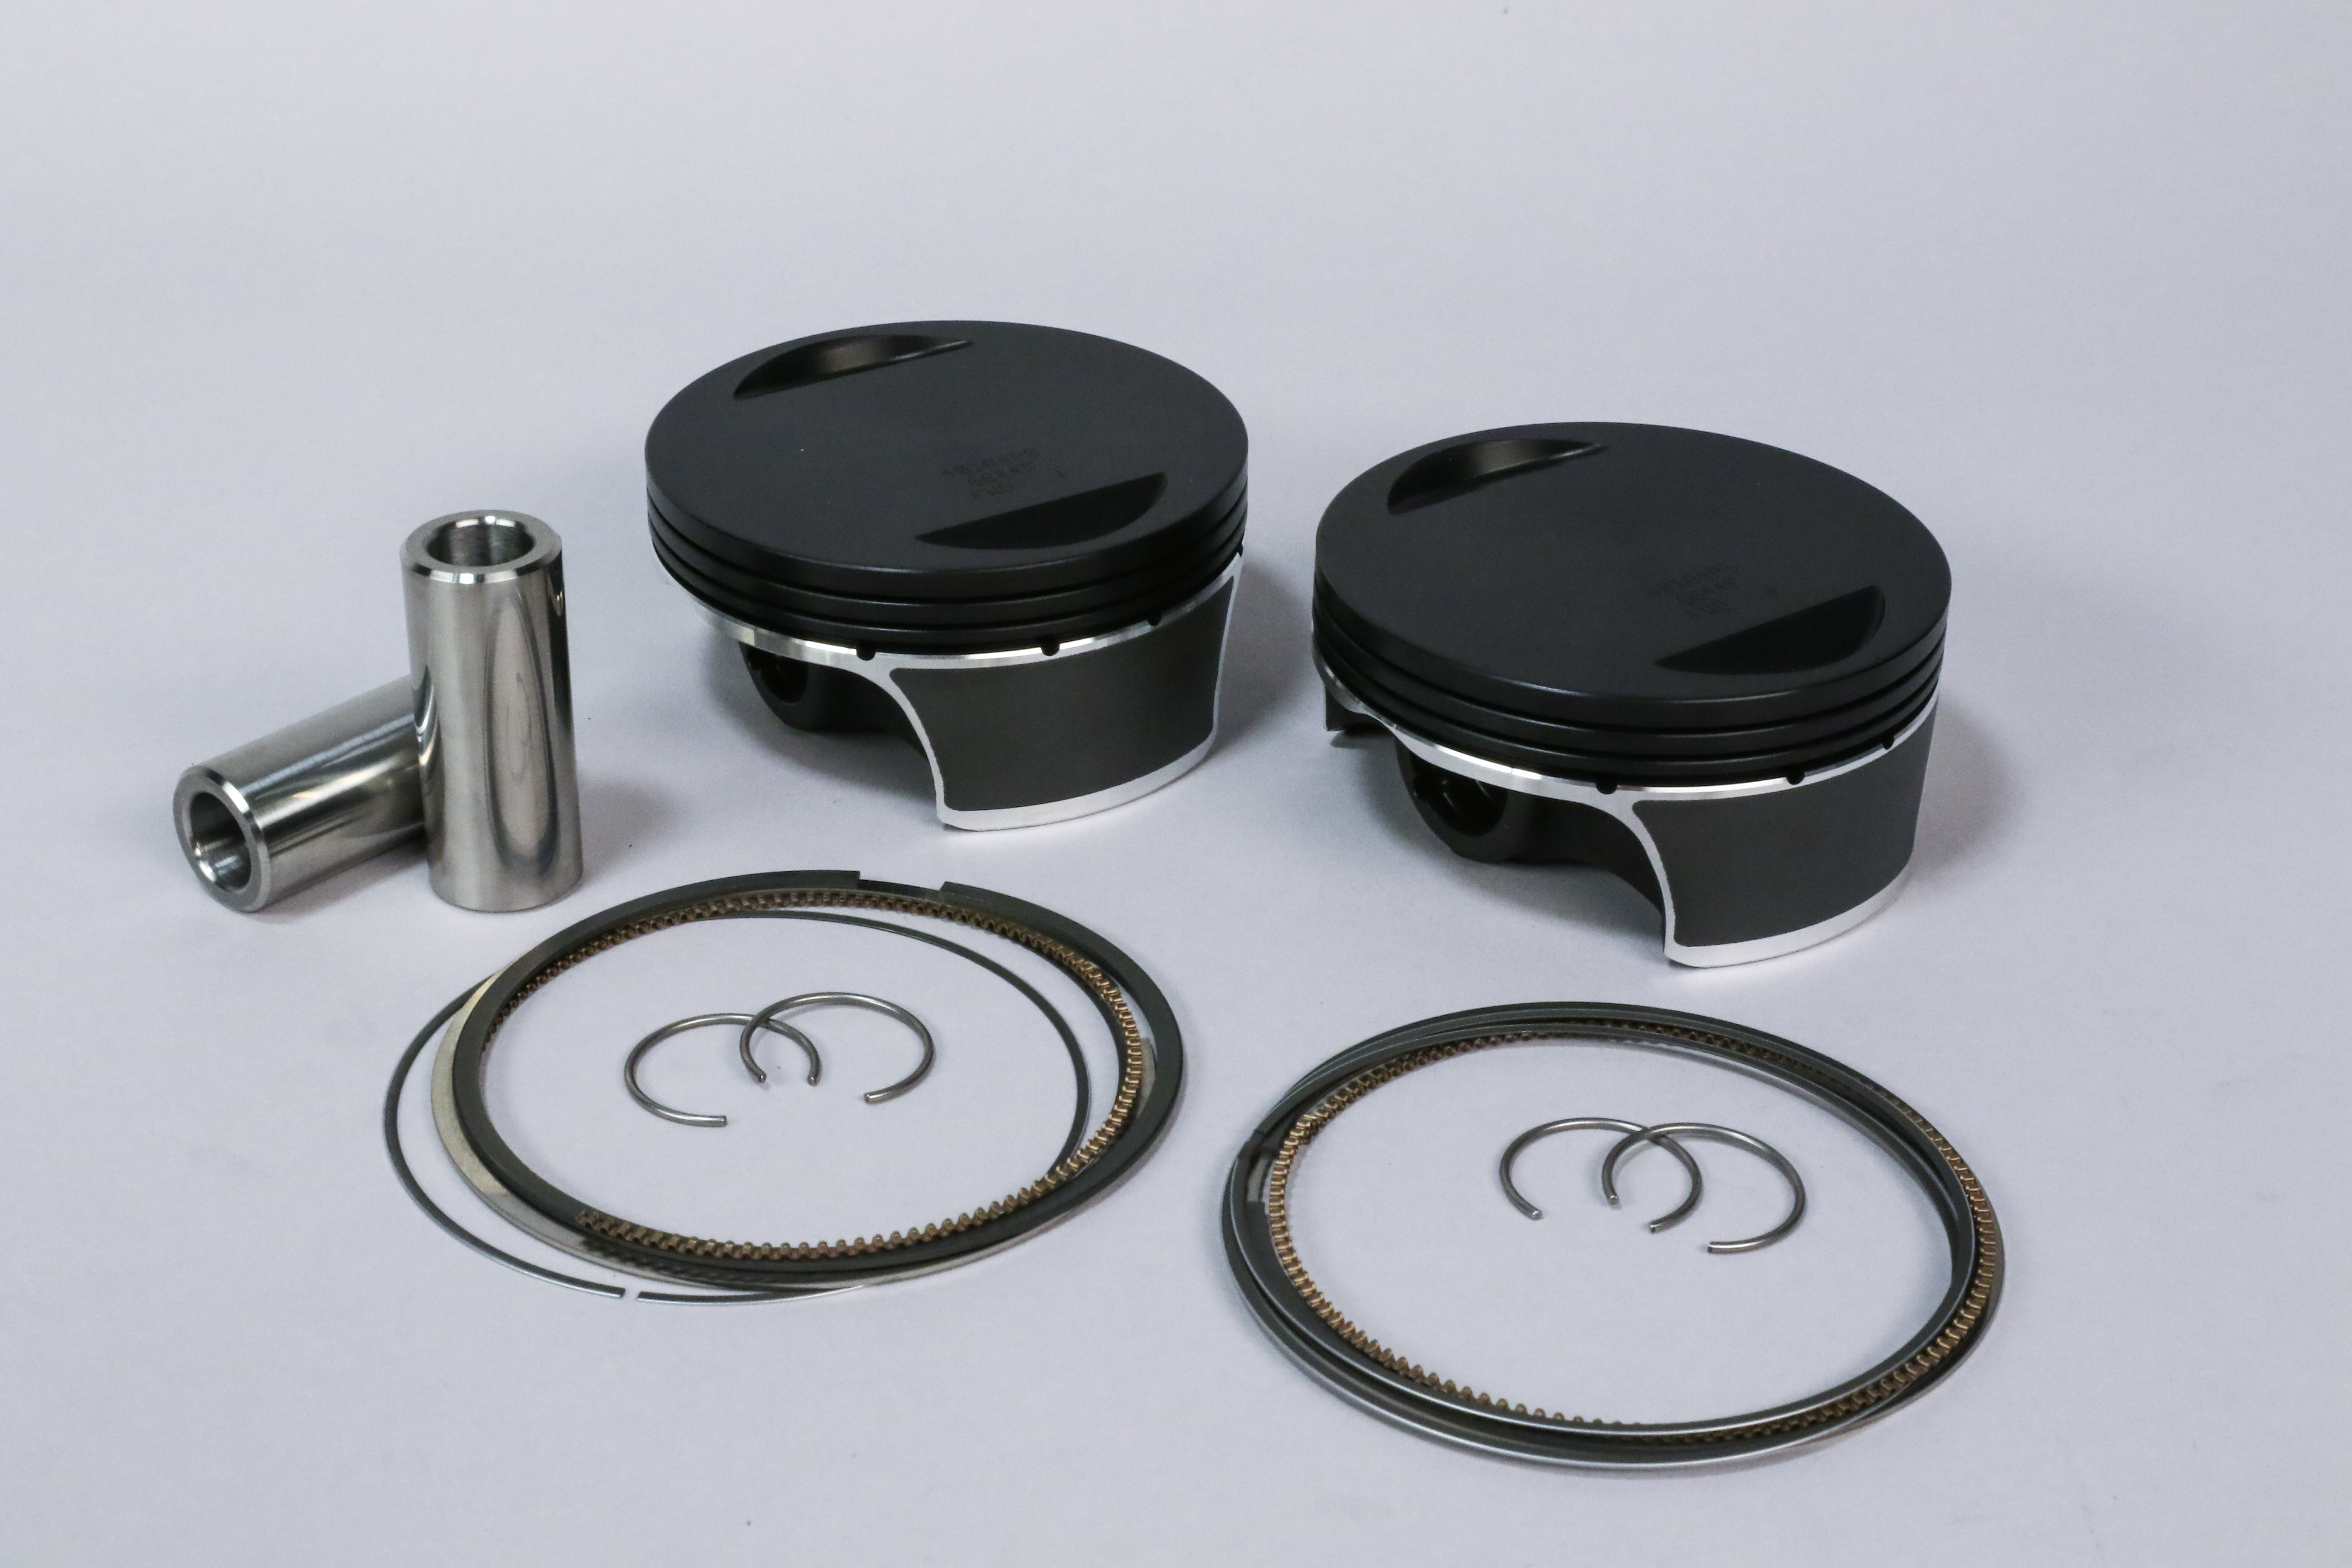 Wiseco's New Black Edition Harley Davidson Pistons with